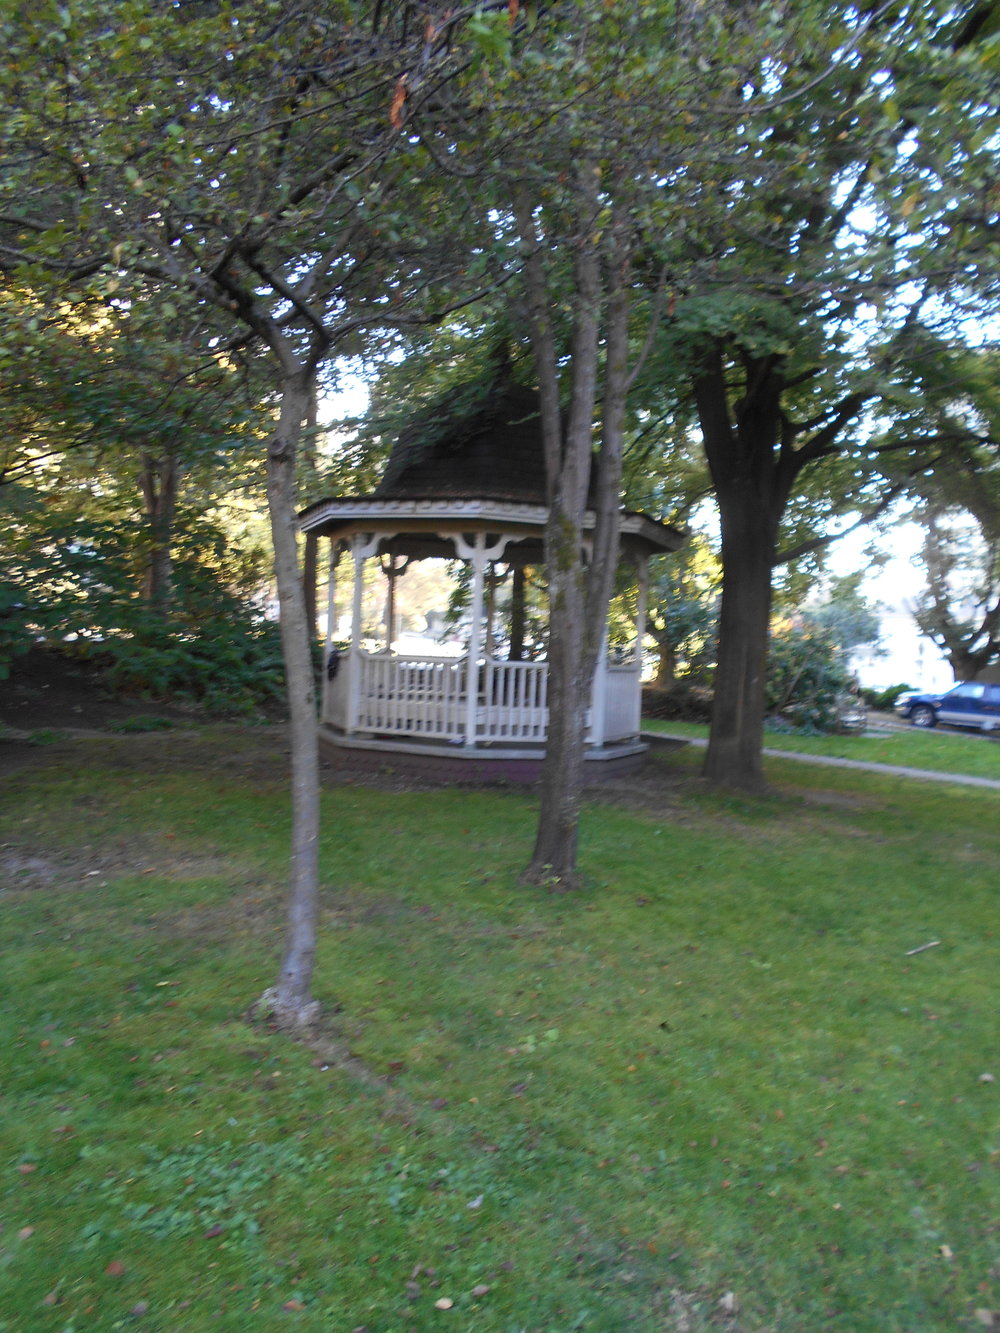 The gazebo at Roedde House Museum.